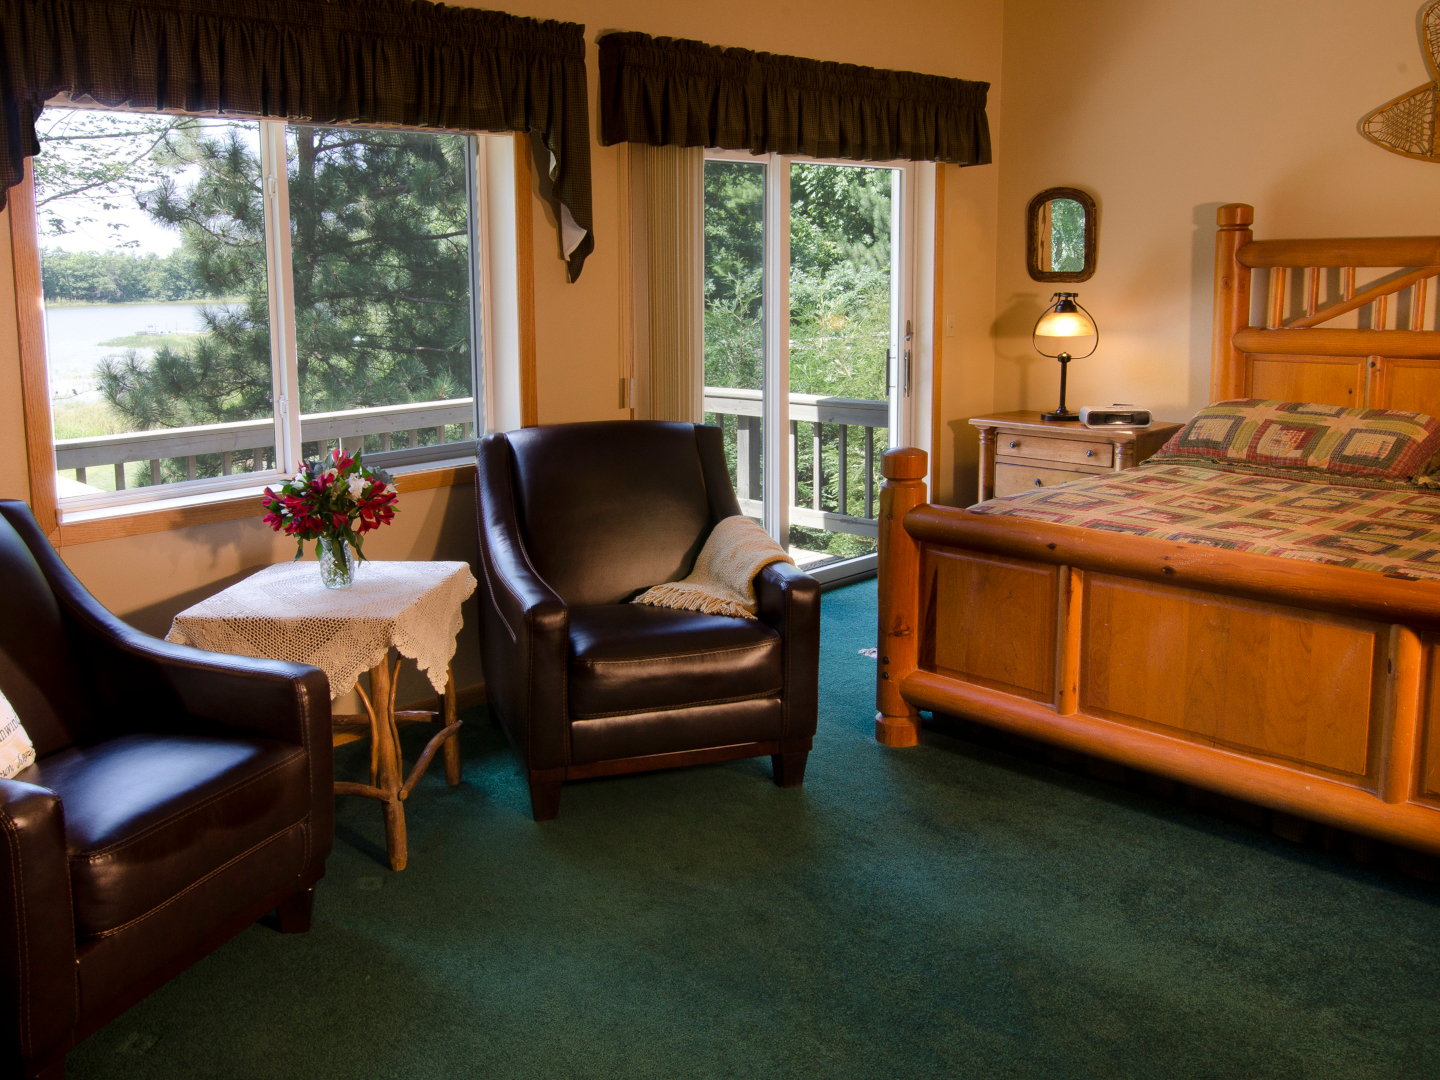 A living room filled with furniture and a large window at Canyon Road Inn.